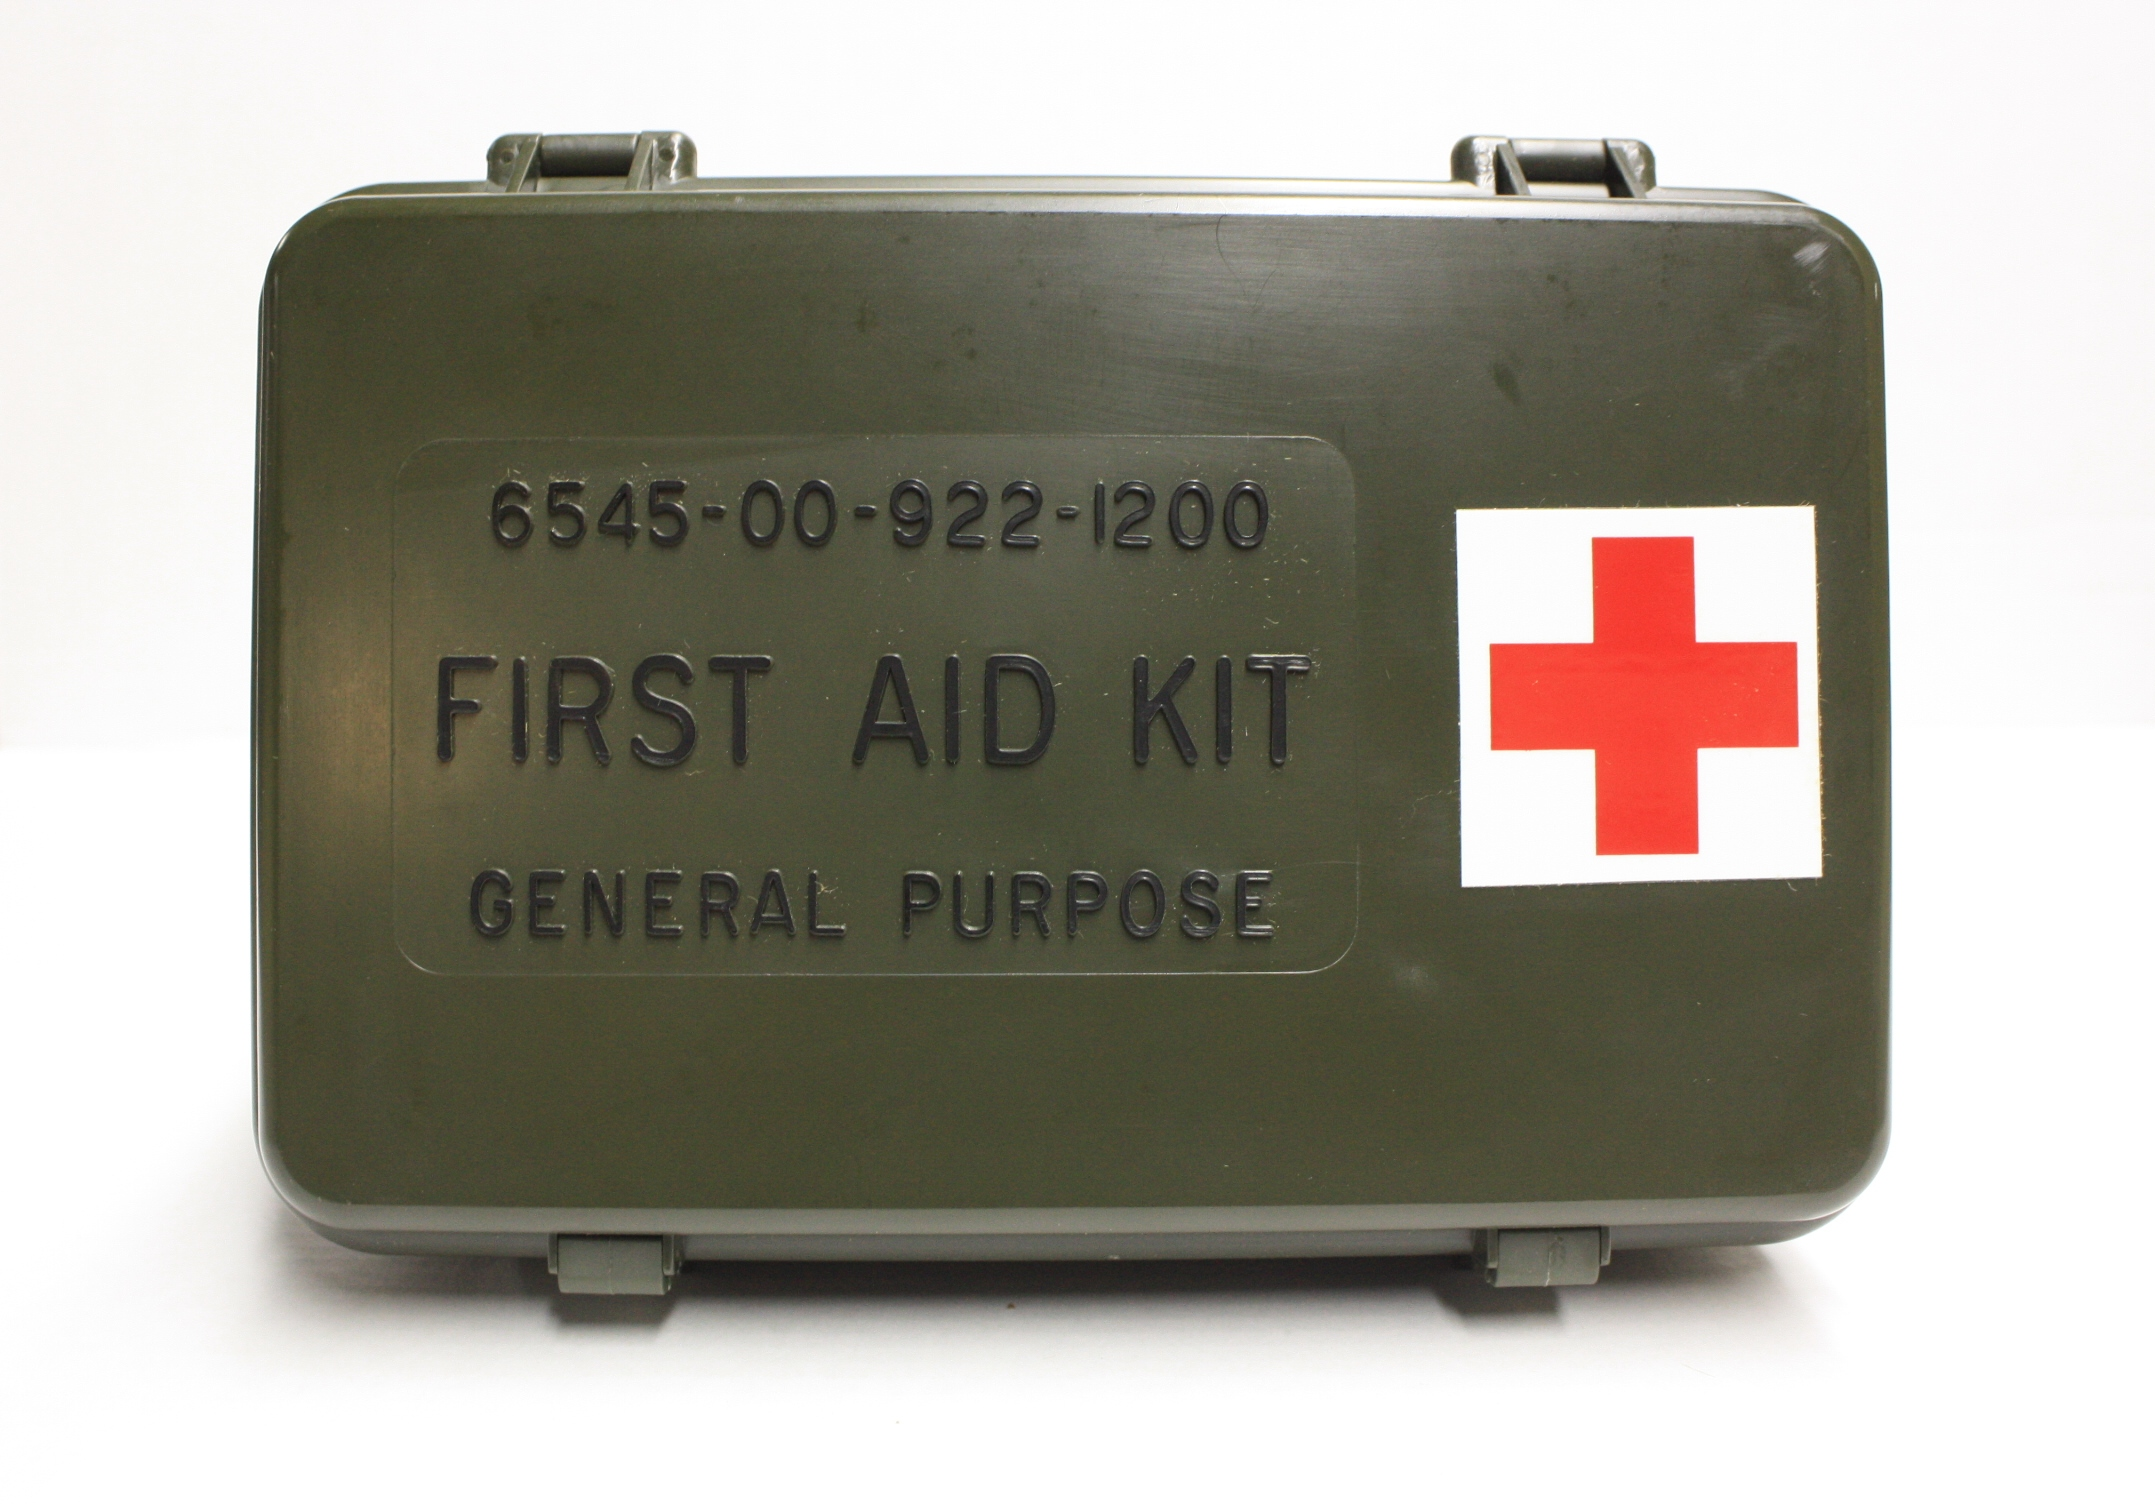 First Aid Kit Box, General Purpose